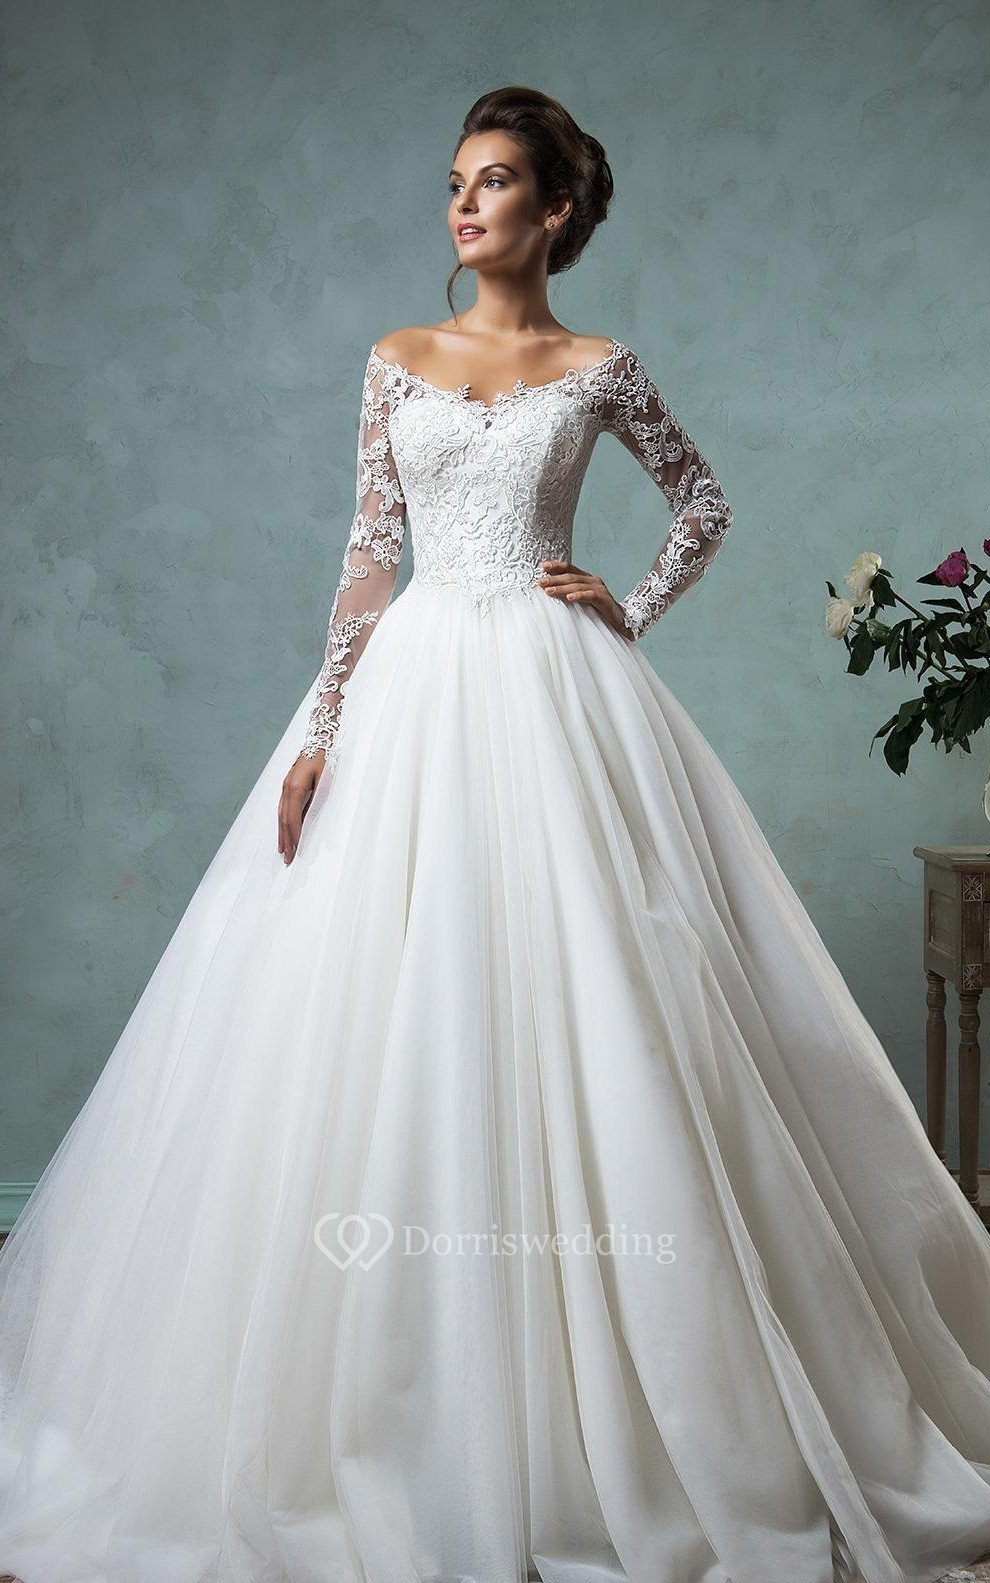 Wedding Dresses for Winter – fashion dresses